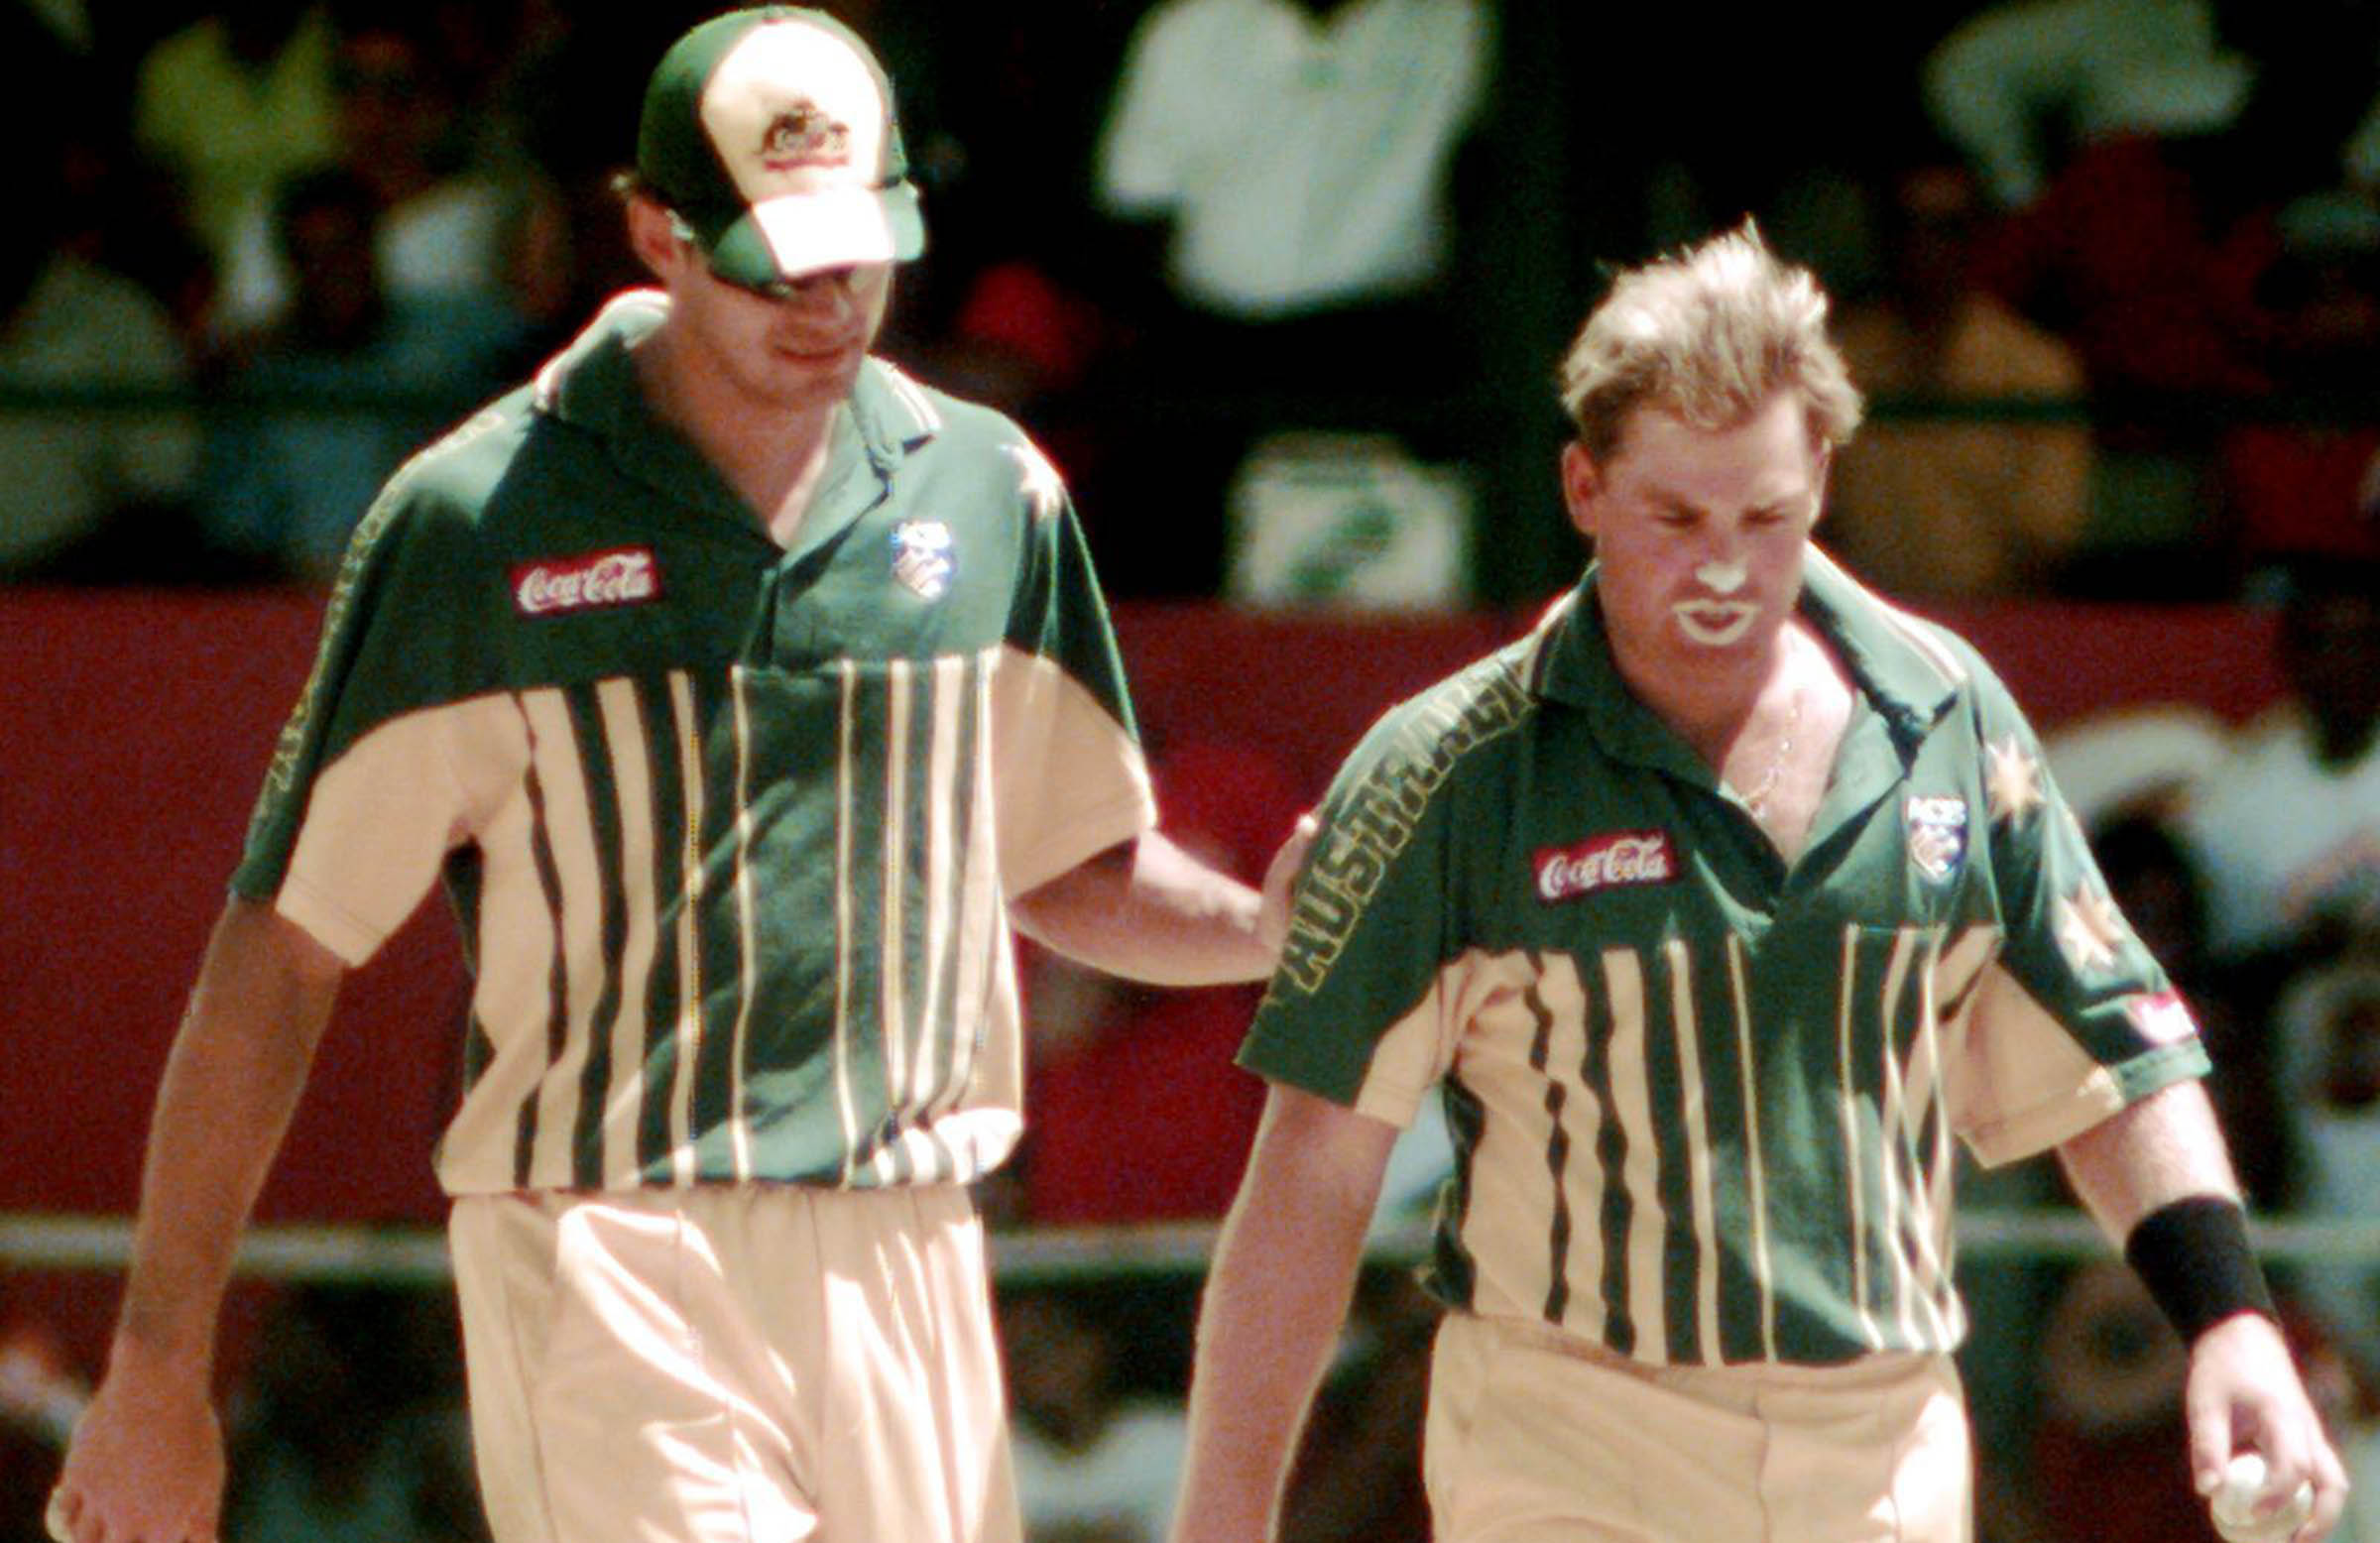 Shane Warne was struggling after being dropped from the Test side in Antigua // AAP